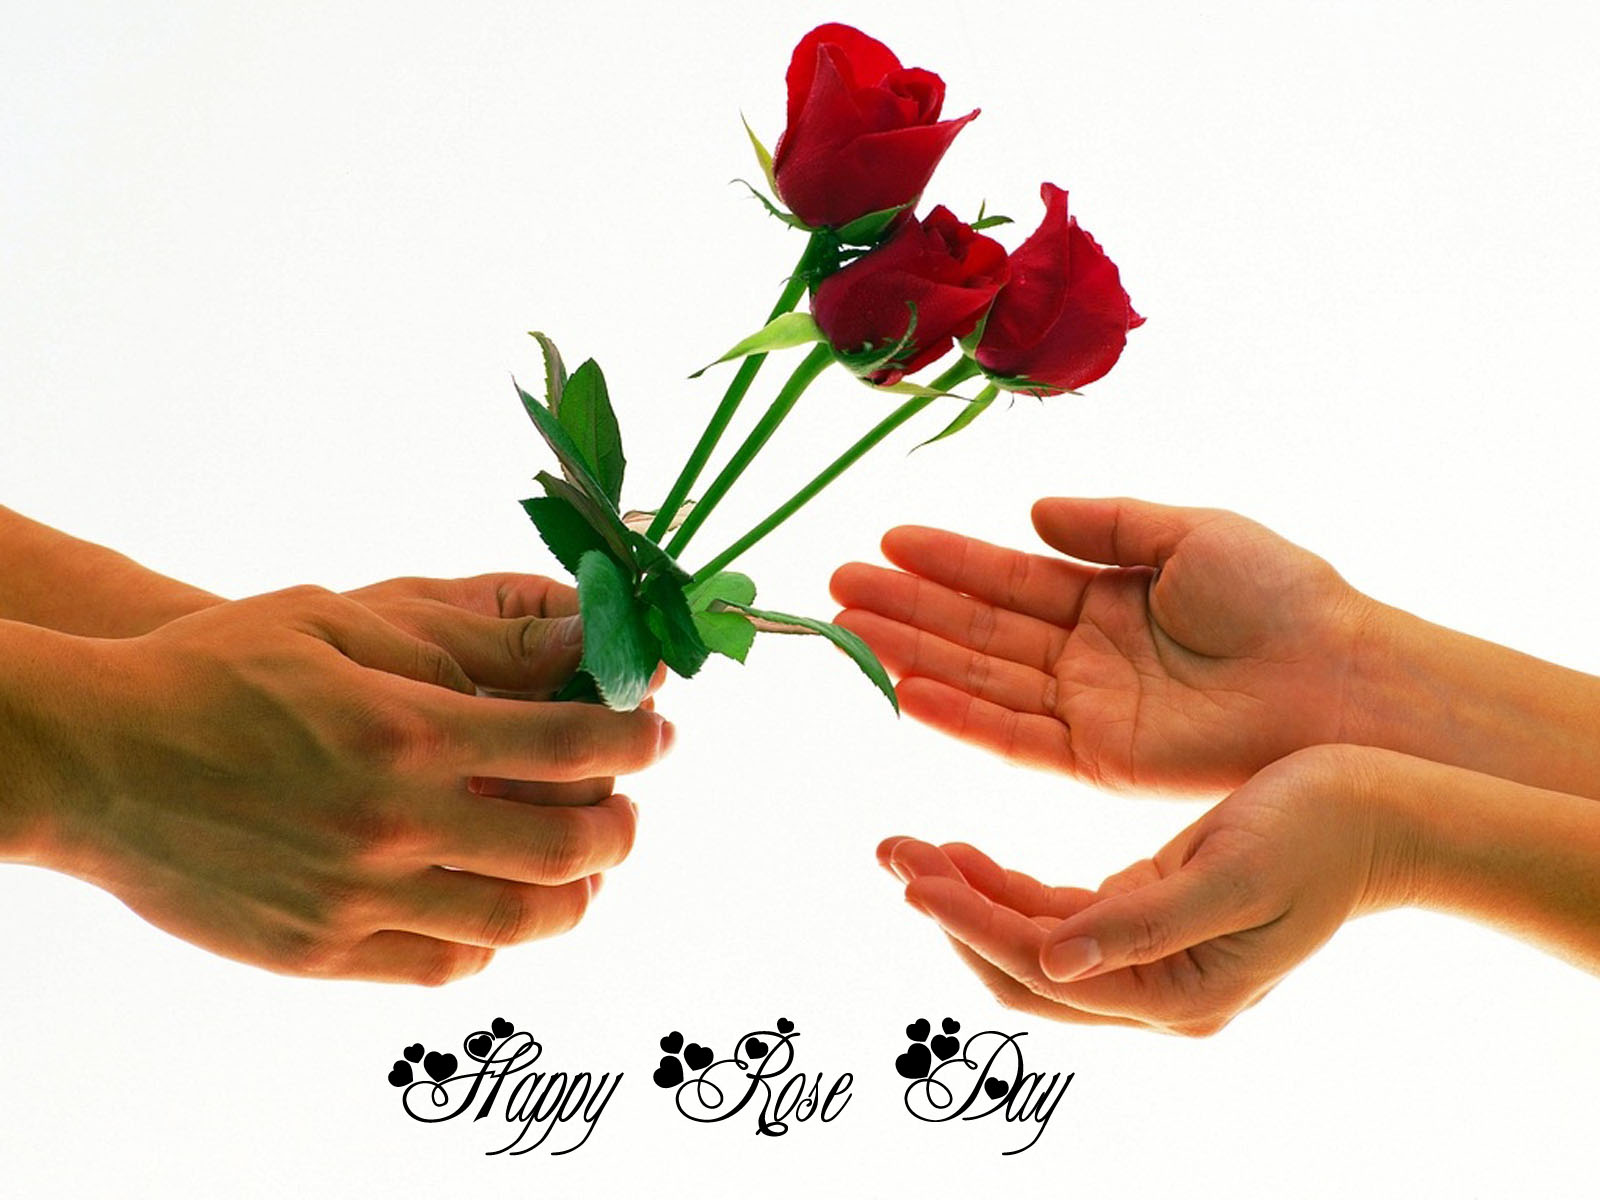 Happy Rose Day Wallpapers HD